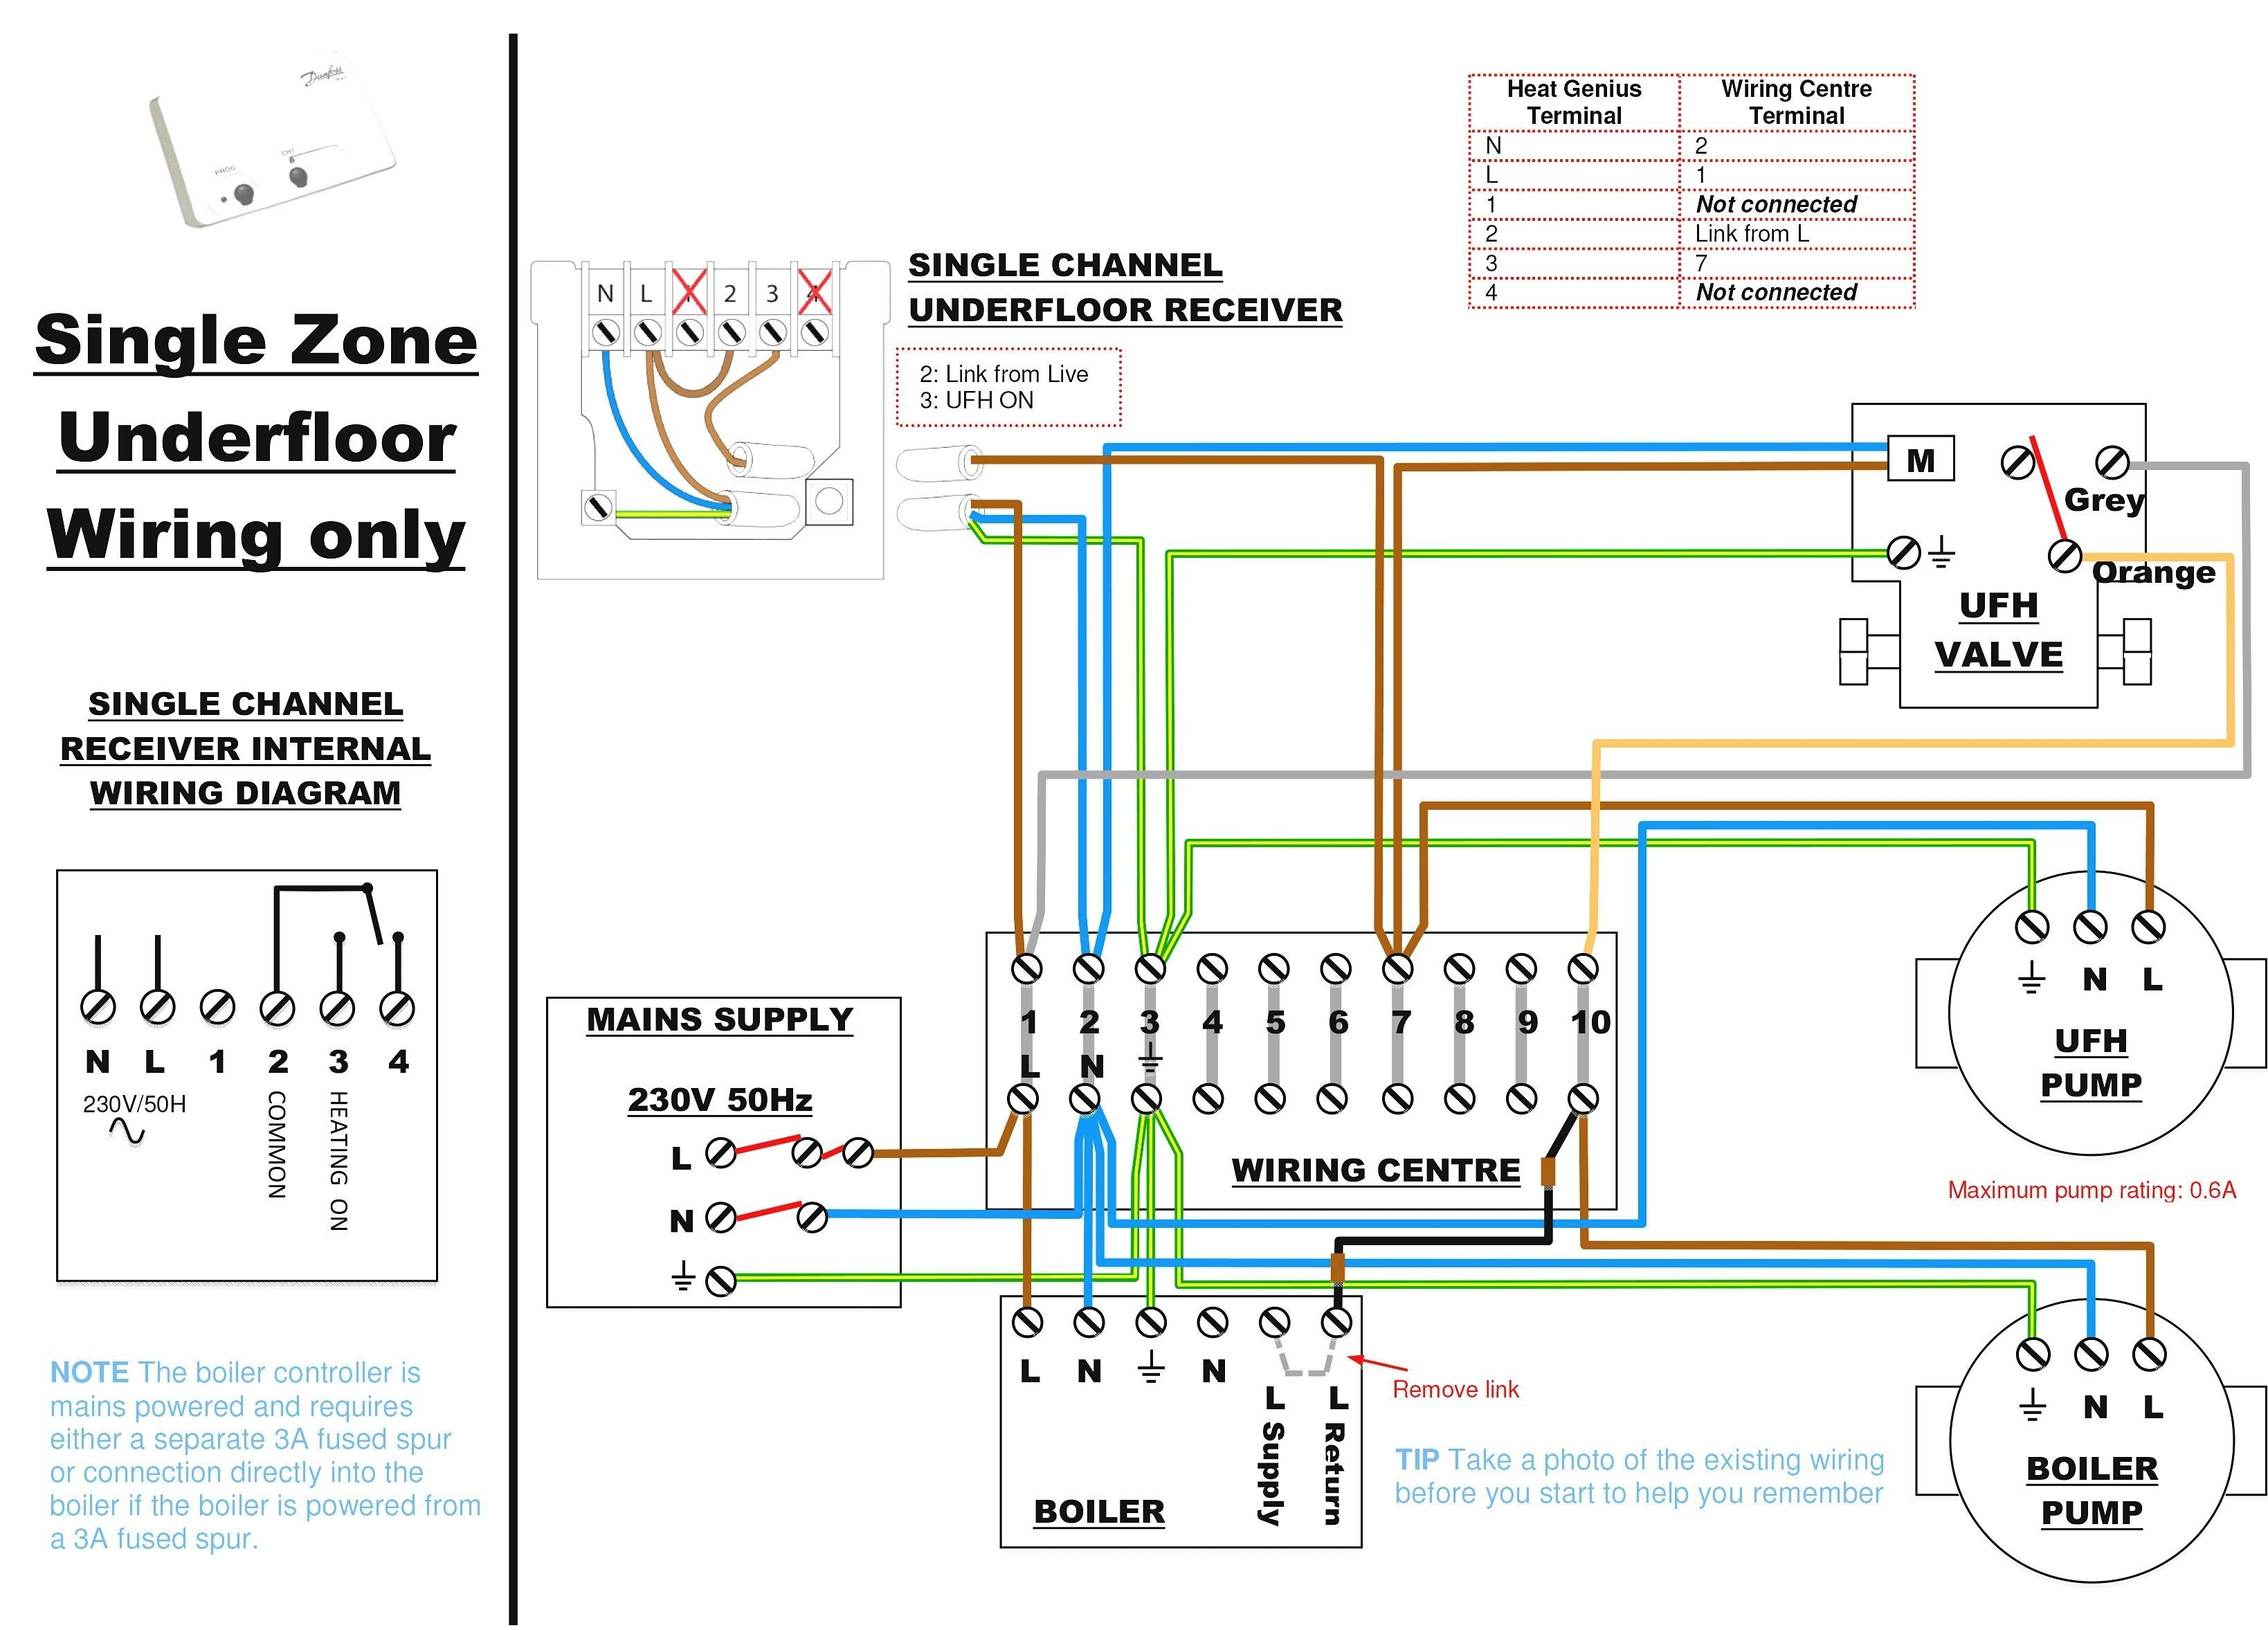 Lovely Wiring Diagram For Honeywell S Plan Diagrams Digramssample Diagramimages Wiringdiagramsample Wiringdiagra Thermostat Wiring Diagram Heating Systems